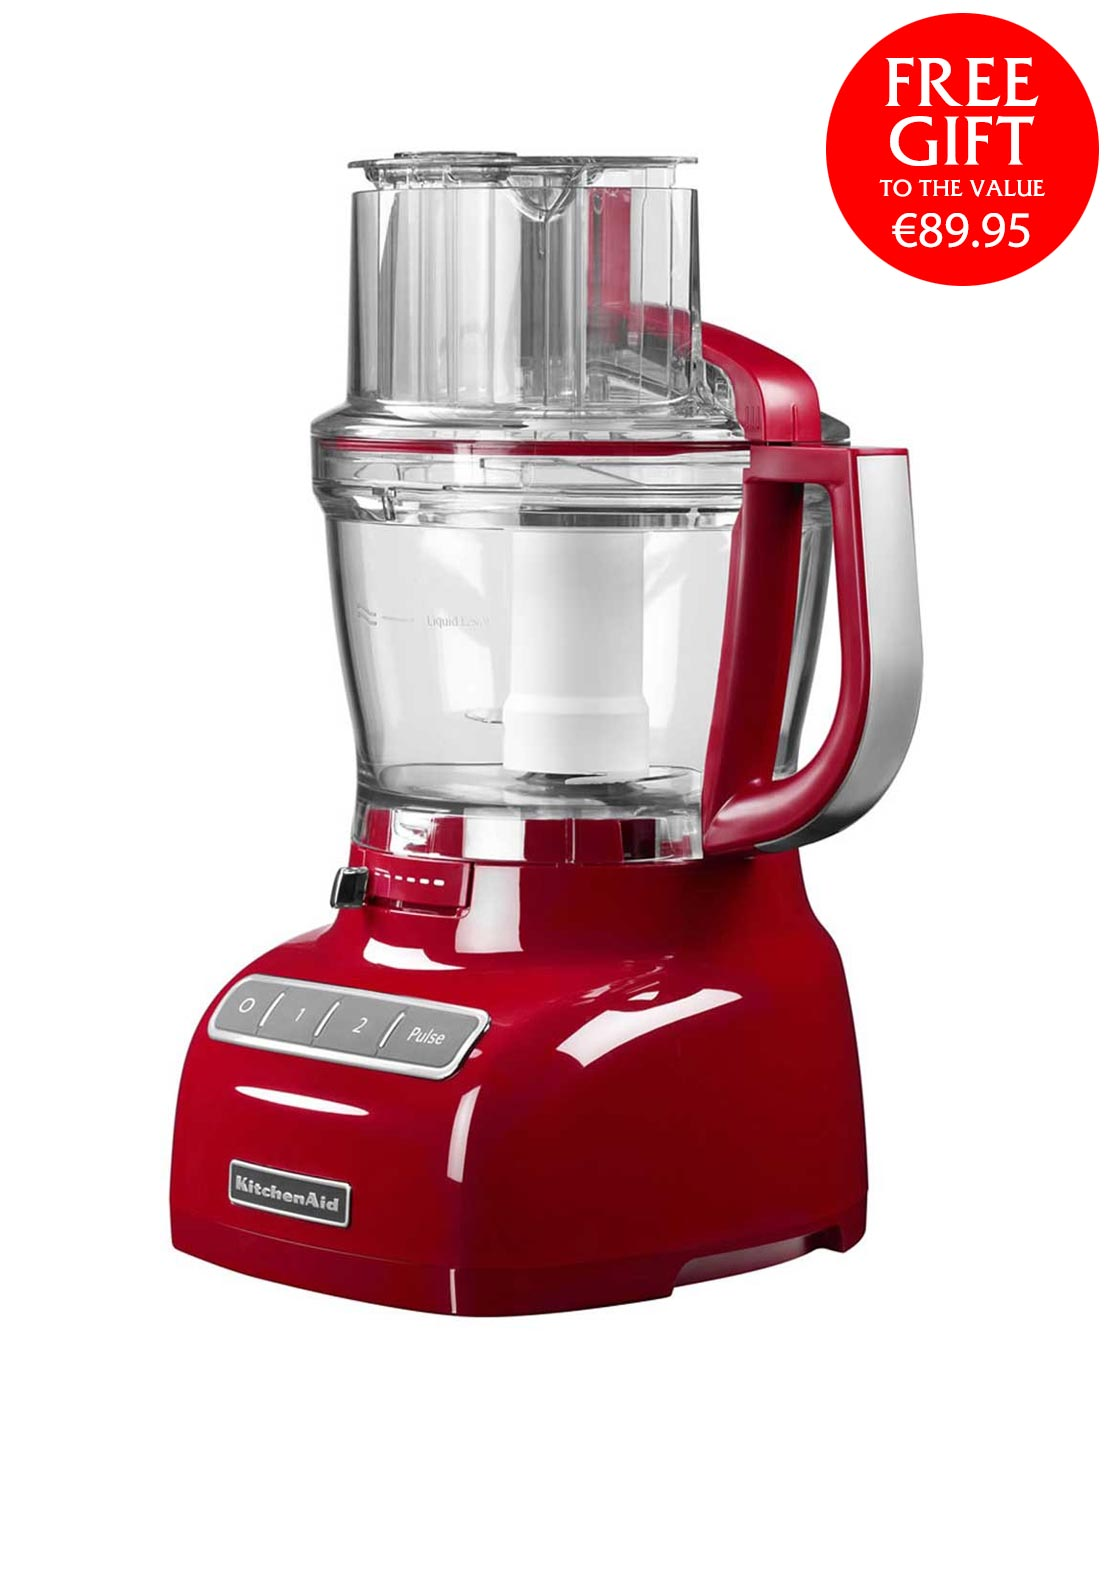 KitchenAid 3.1 Litre Food Processor, Empire Red